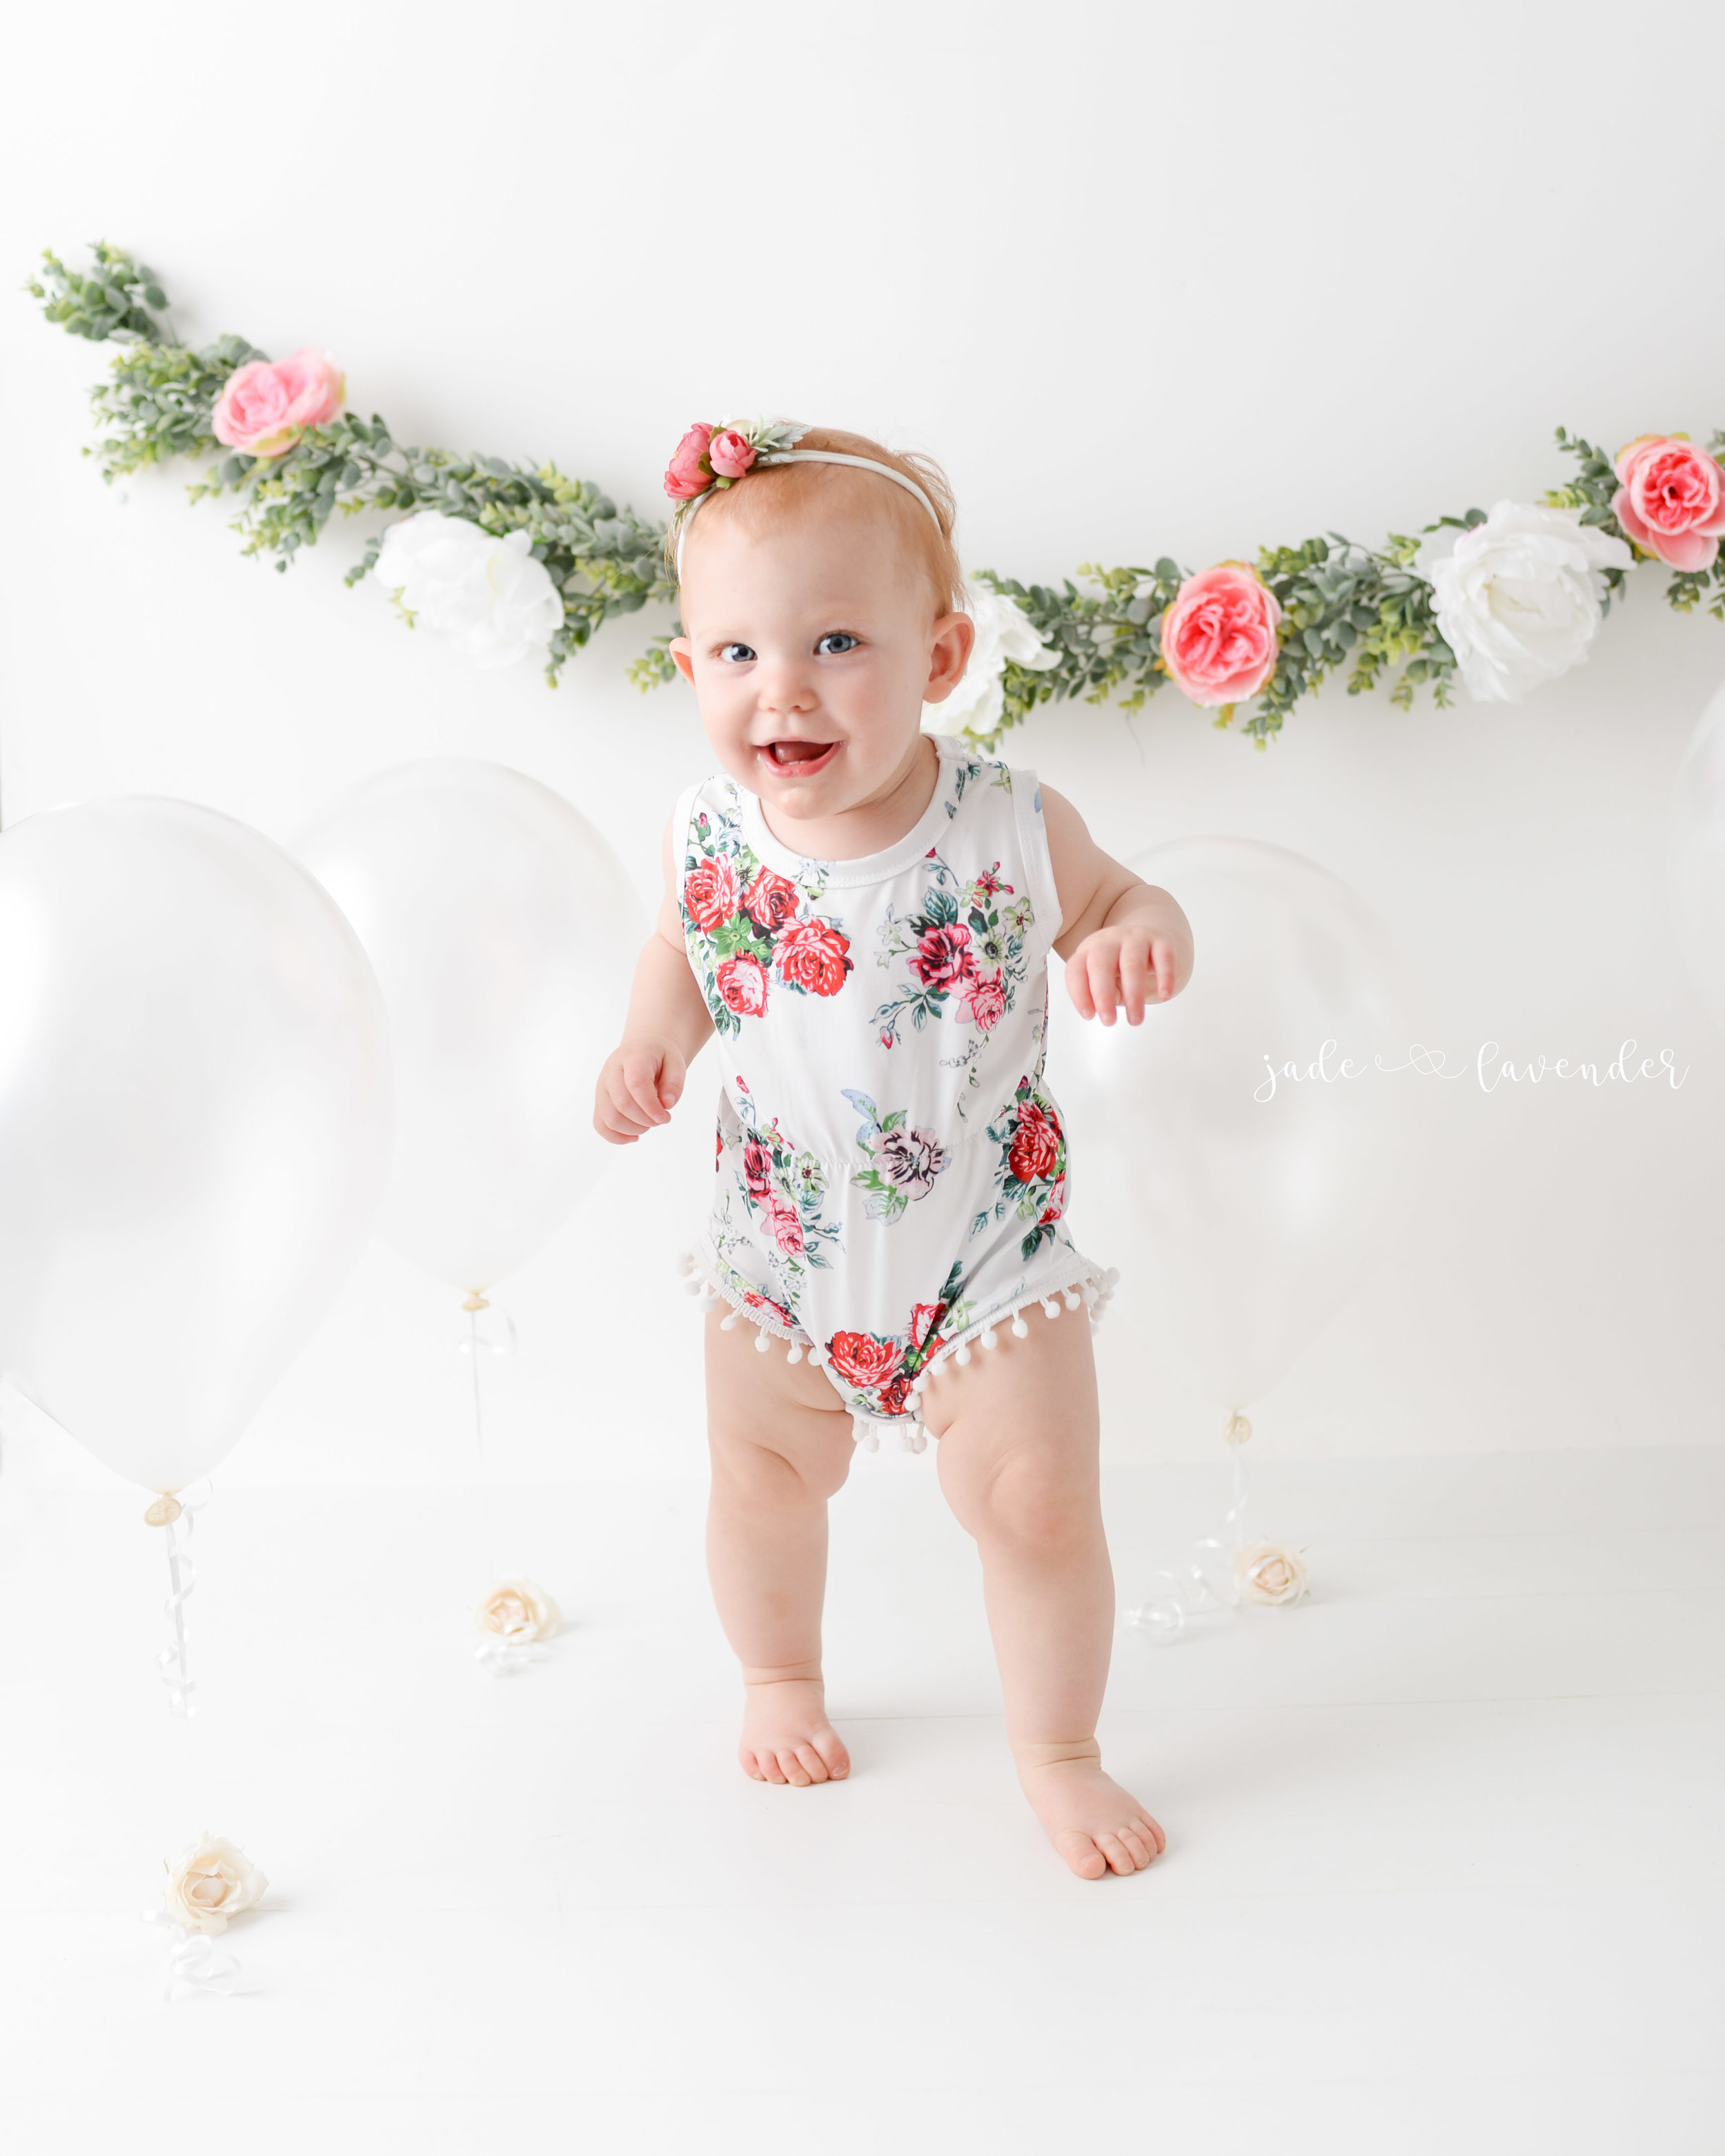 cake-smash-one-year-photos-baby-photography-newborn-infant-images-spokane-washington (3 of 6).jpg